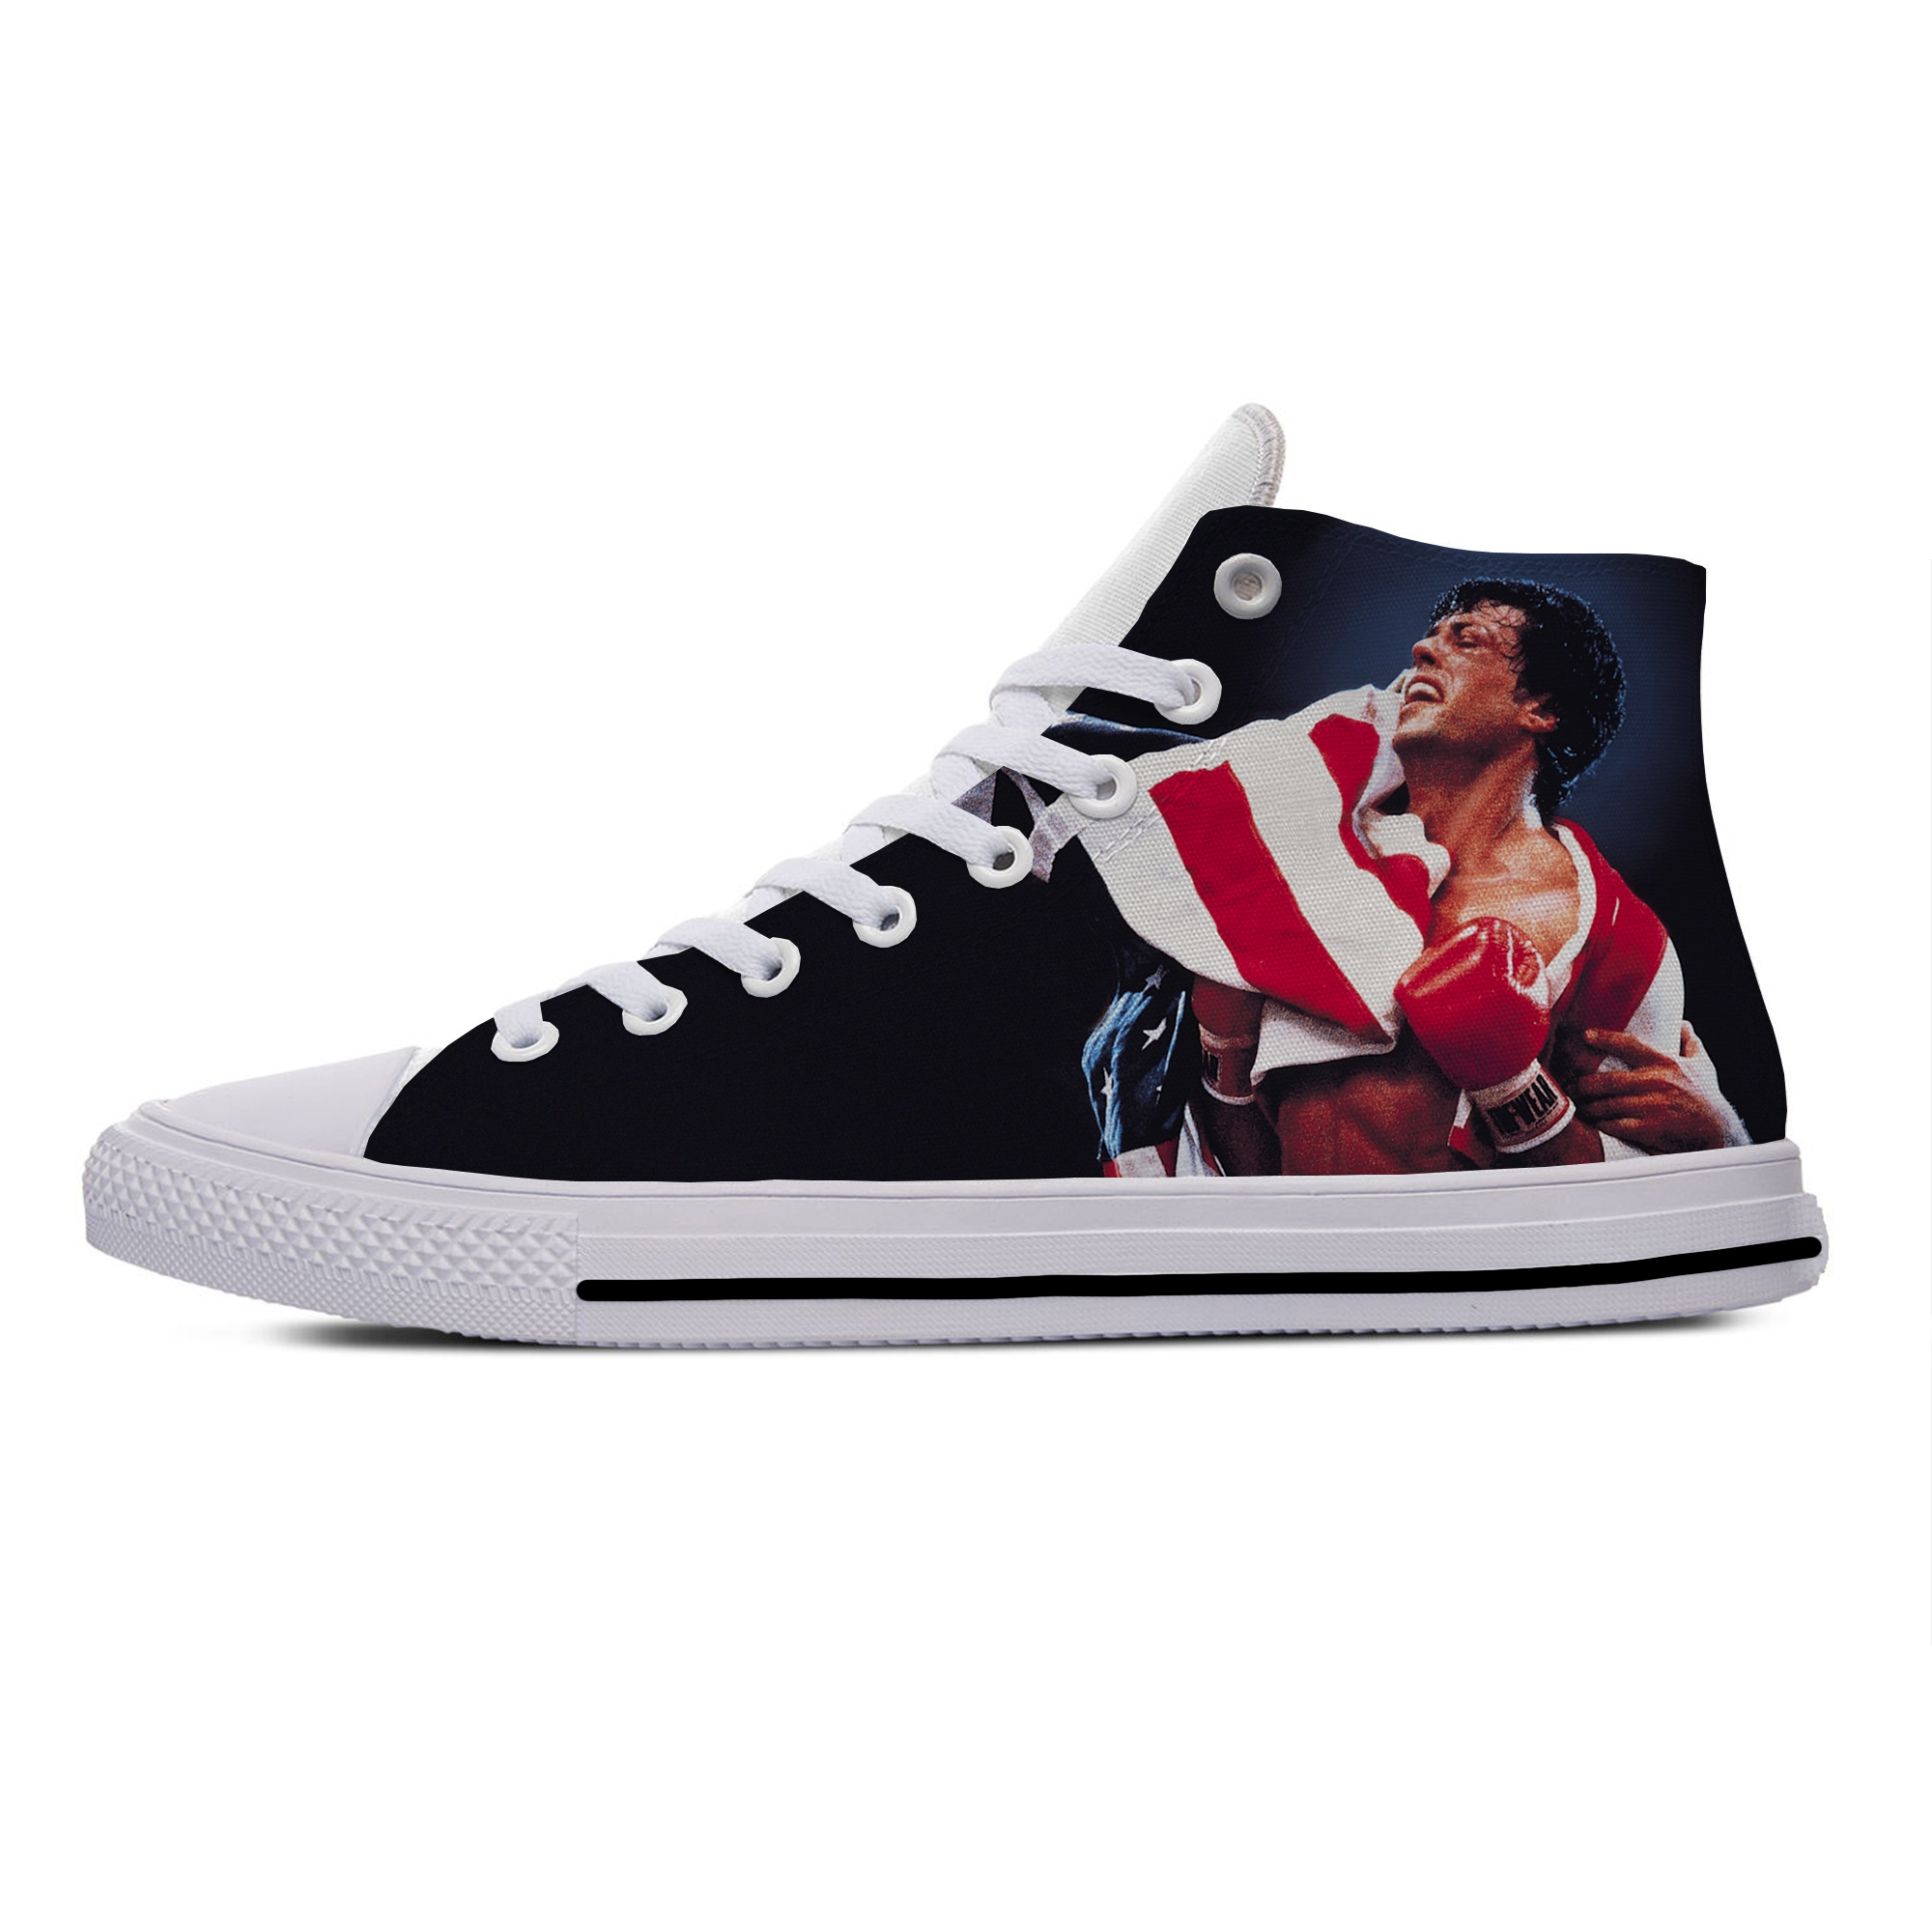 Boxing Box Movie rocky balboa Fashion Funny Cool Casual Canvas Shoes High Top Lightweight Breathable 3D Print Men women Sneakers image